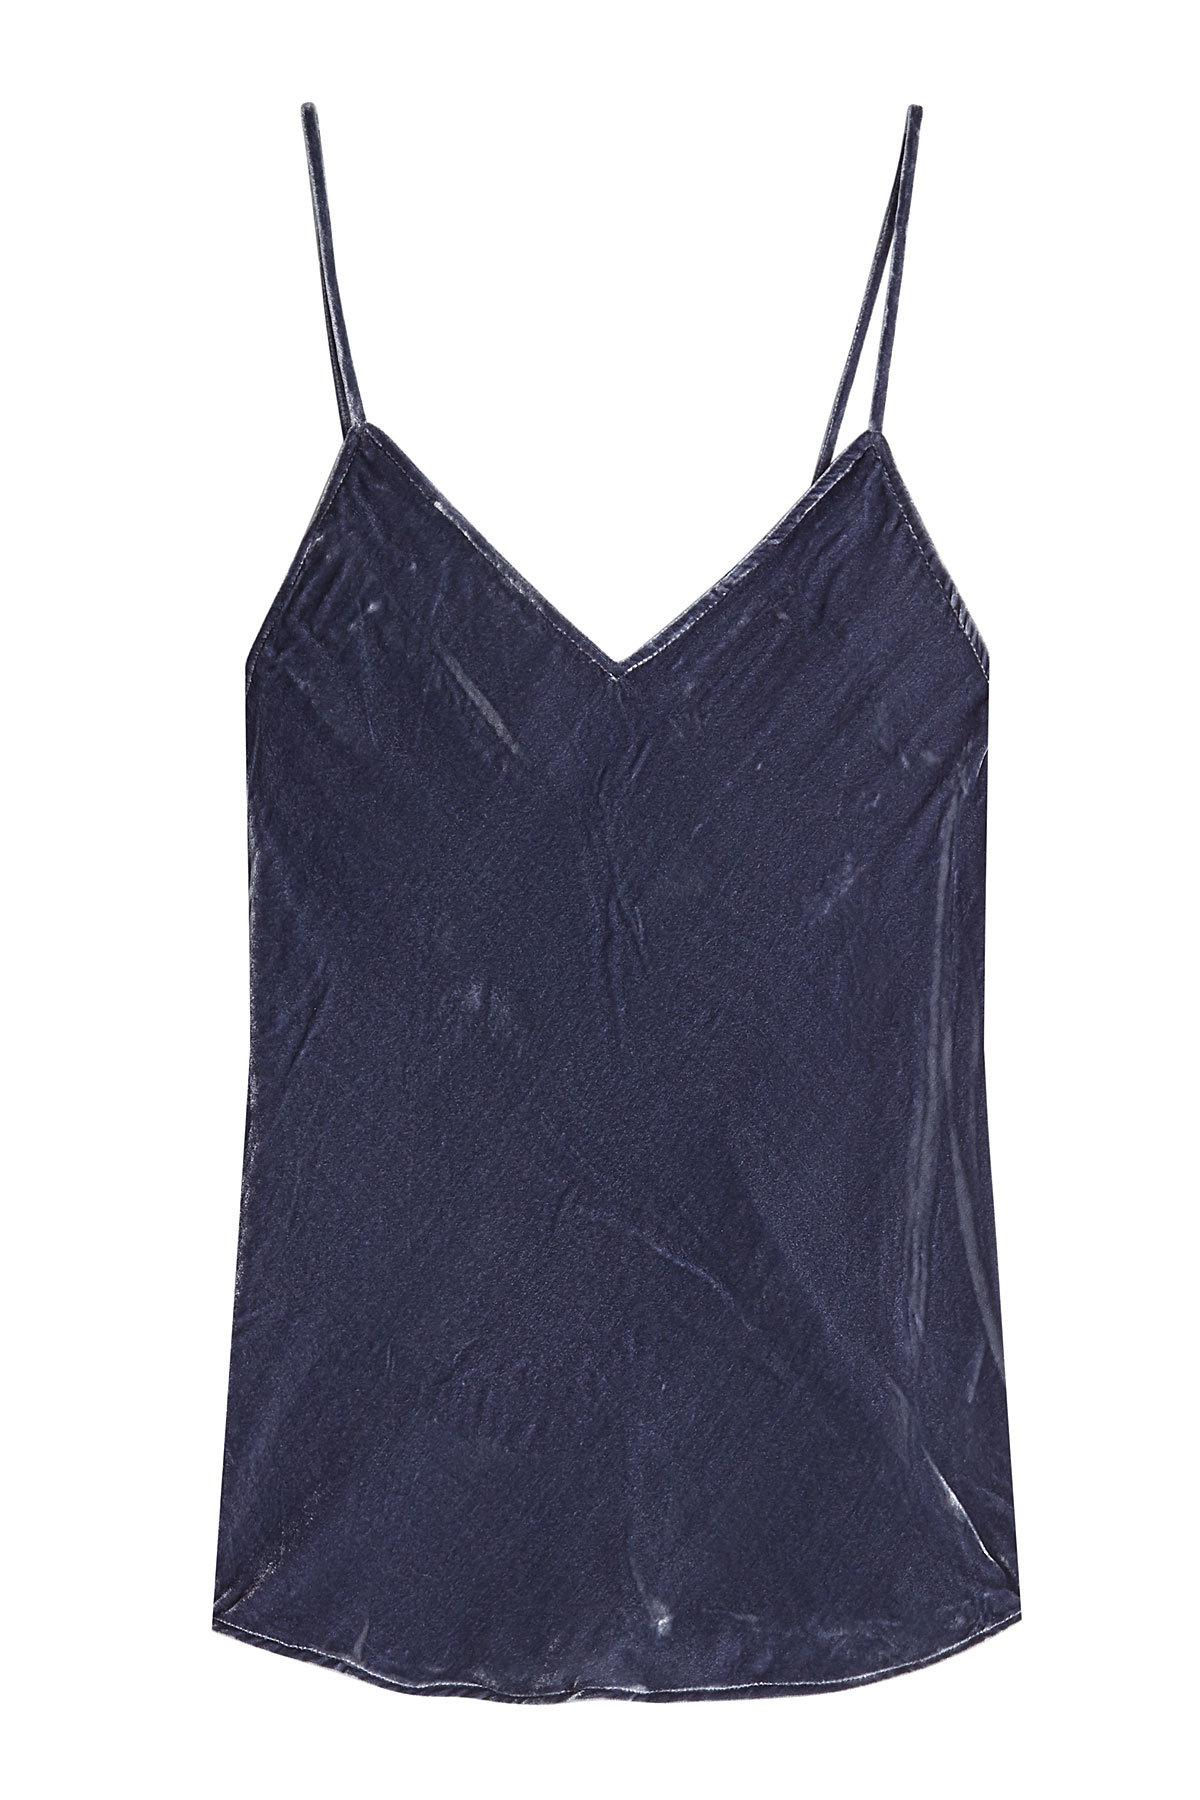 Mes Demoiselles Velvet Camisole With Silk In Blue